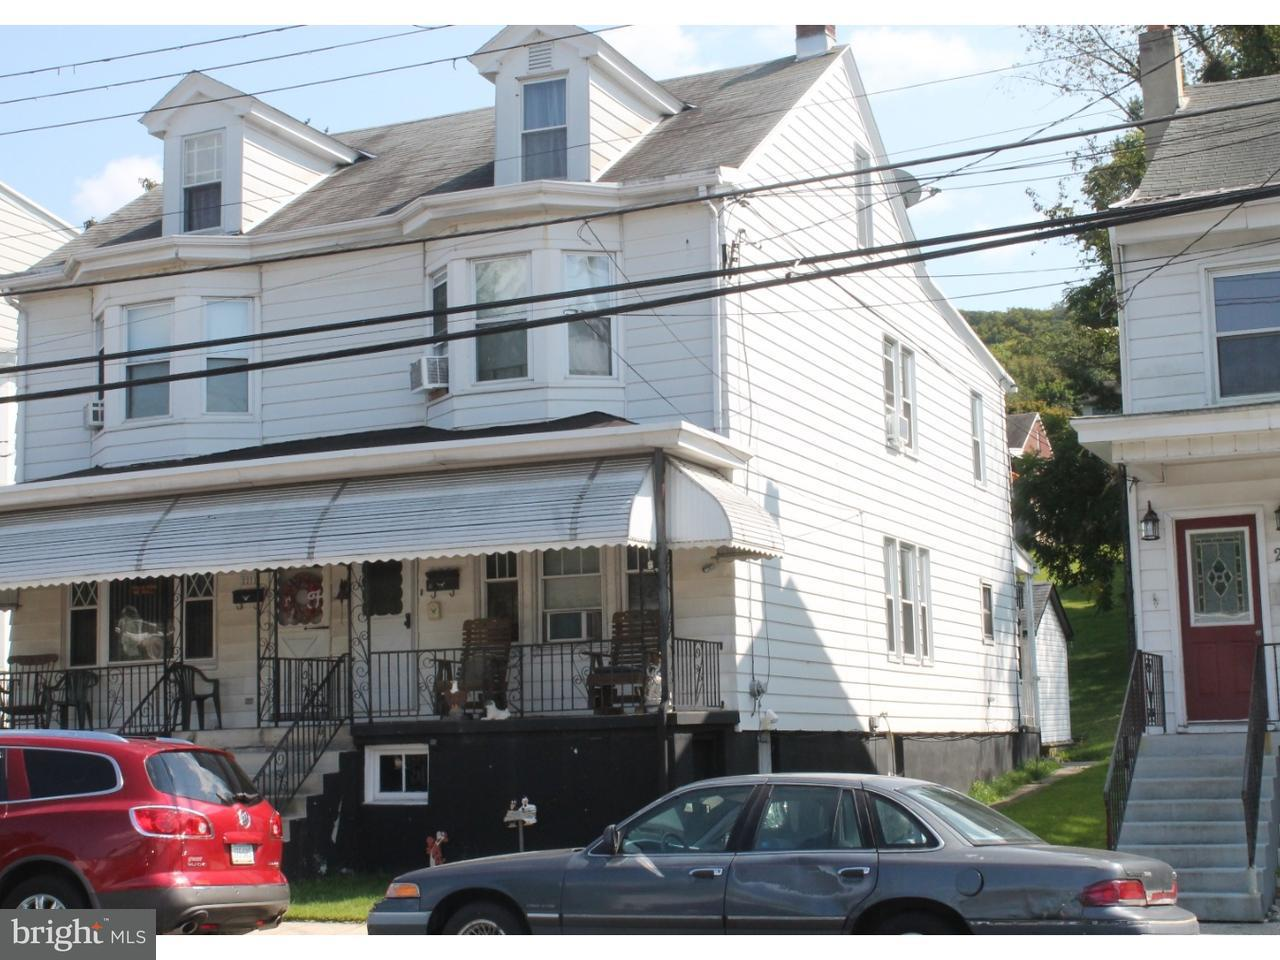 Townhouse for Sale at 2273 W MARKET Street Pottsville, Pennsylvania 17901 United States